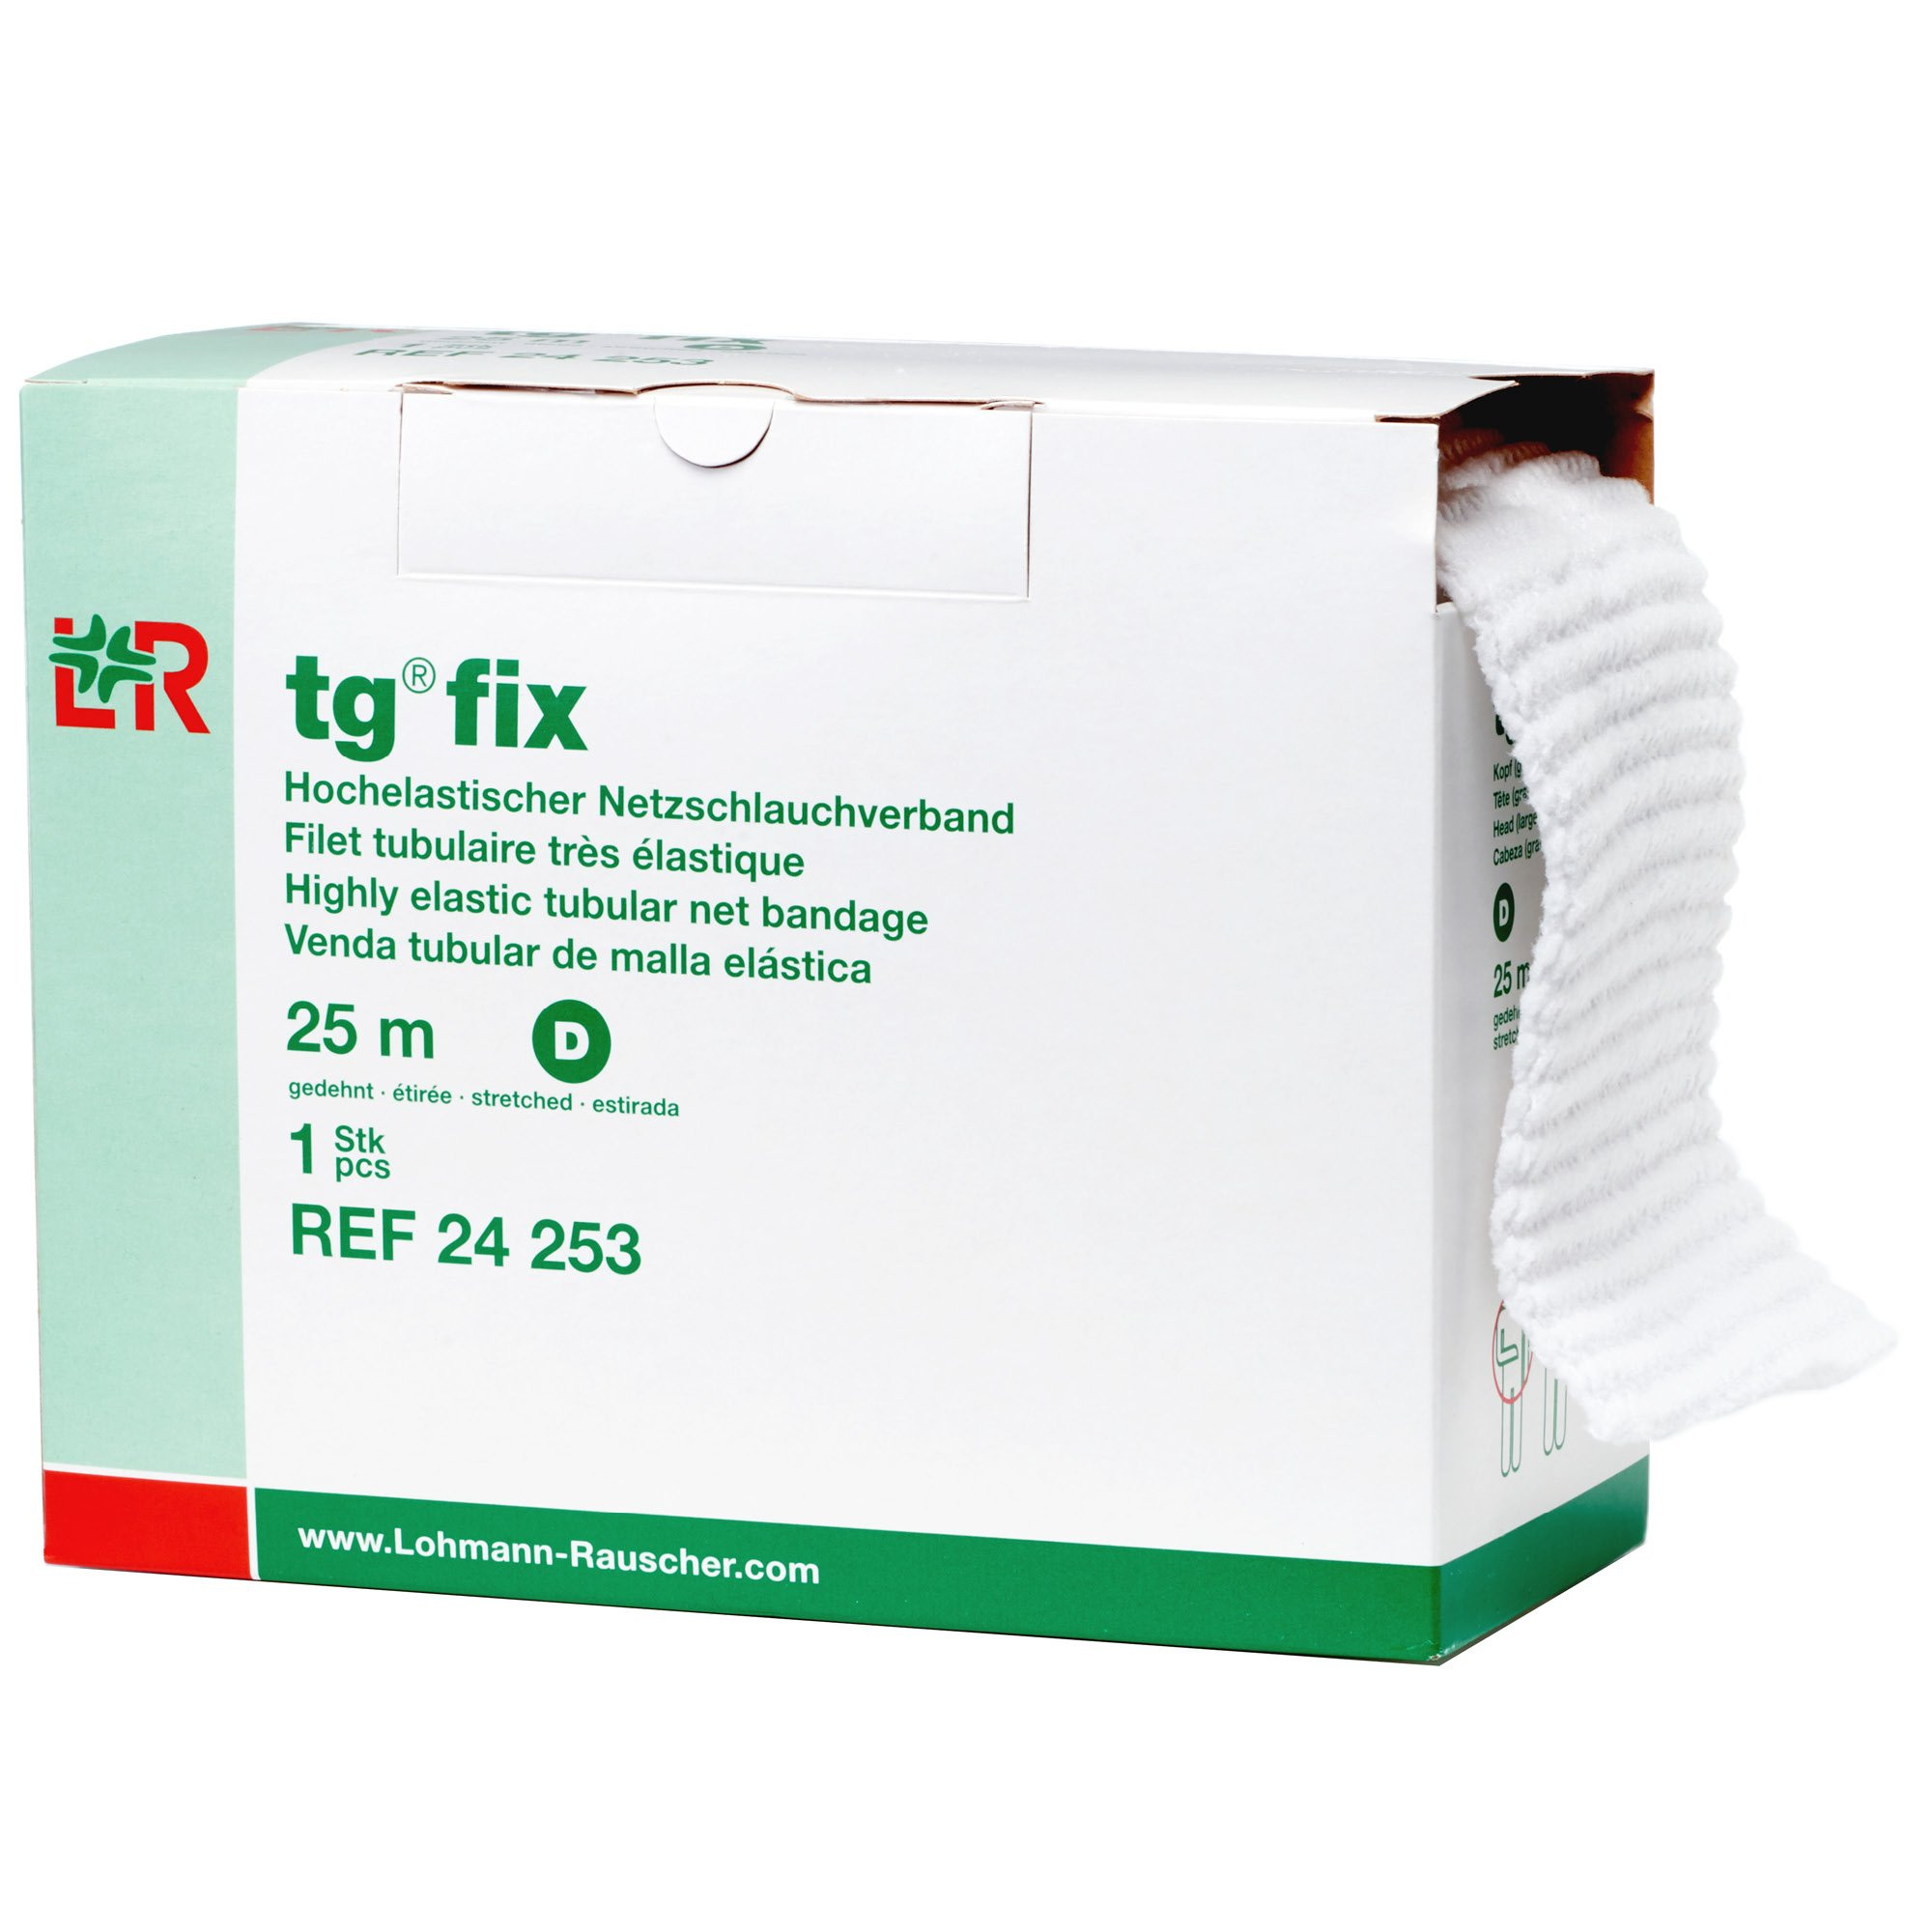 tg Fix Net Tubular Bandage, Elastic Net Wound Dressing, Bandage Retainer for the Head & Trunk, Size D (105.0 cm When Stretched x 2.5 m)